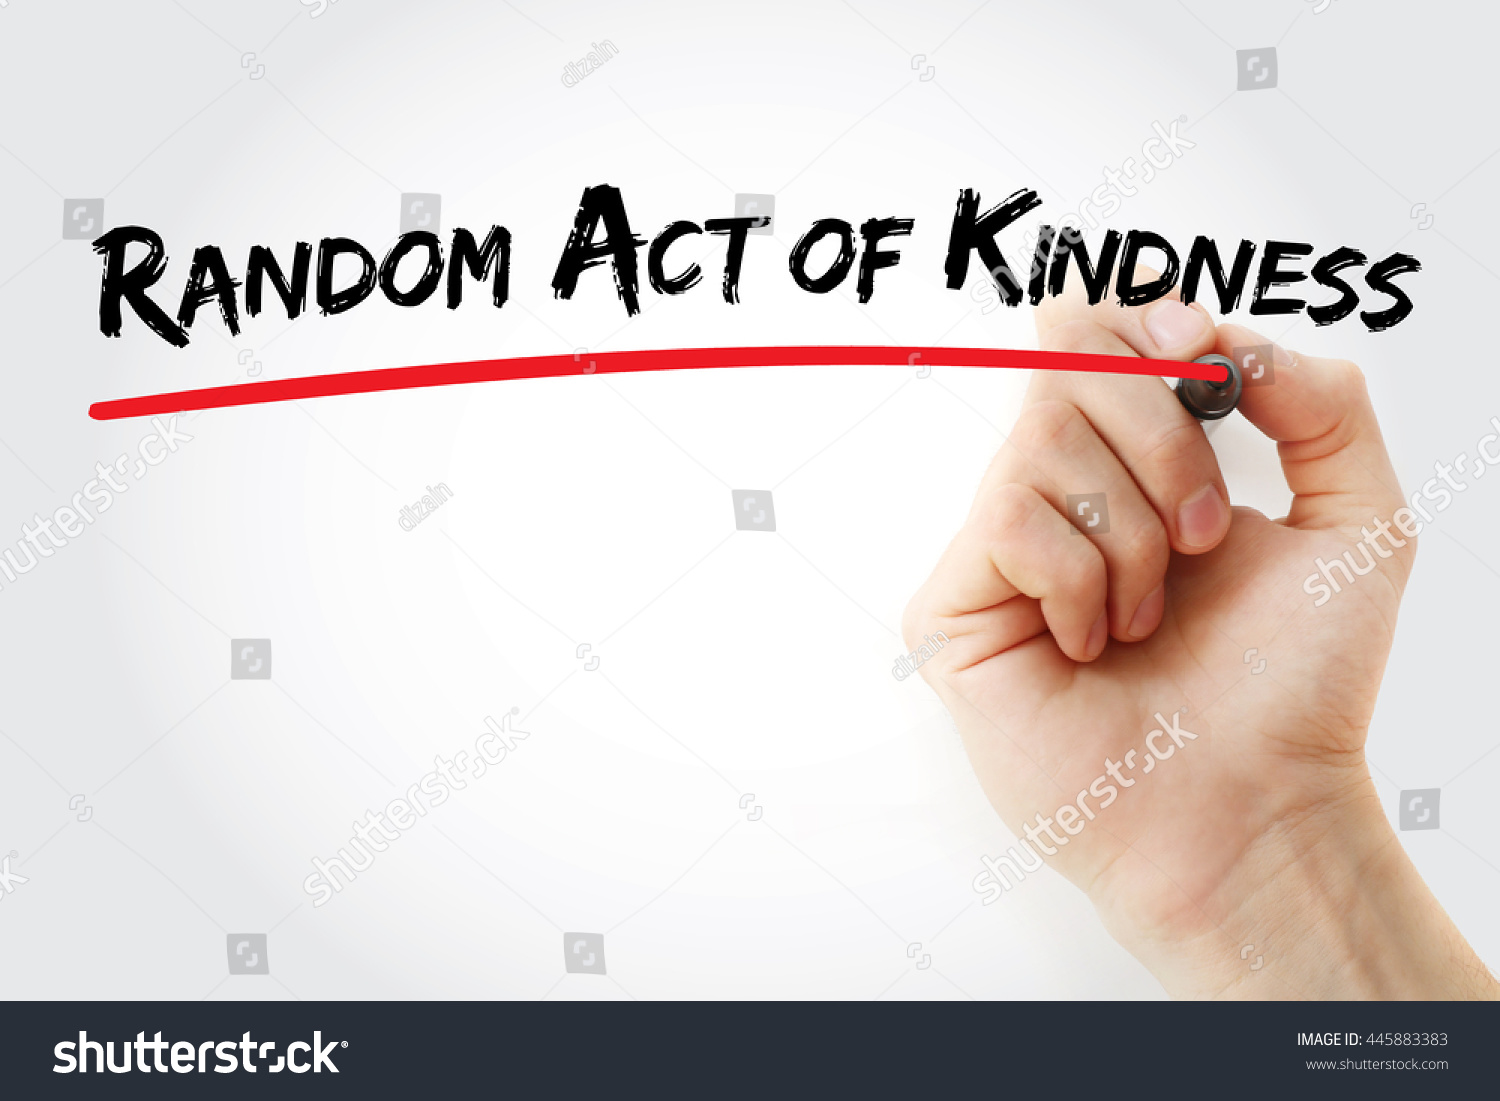 act of kindness essays Read this essay on acts of kindness come browse our large digital warehouse of free sample essays get the knowledge you need in order to pass your classes and more only at termpaperwarehousecom.